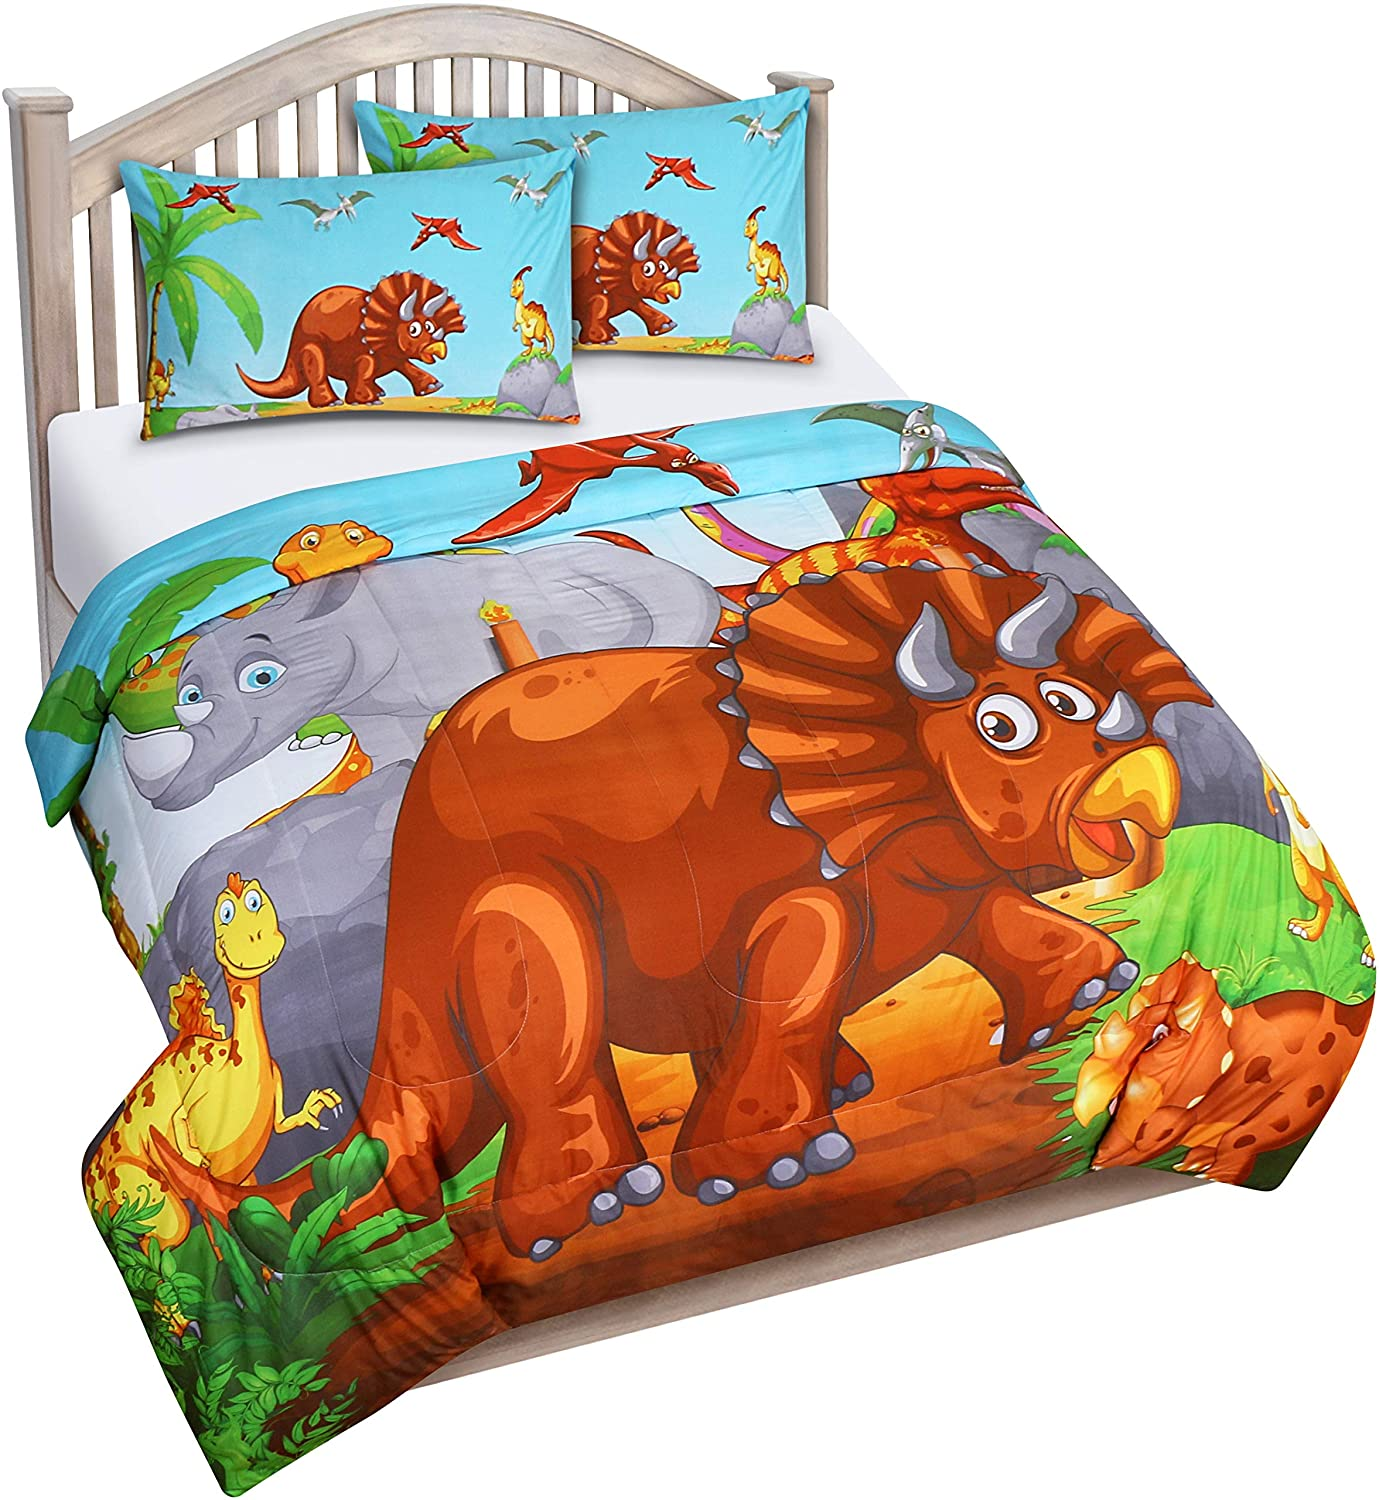 Utopia Bedding All Season Dinosaur Comforter Set - 3 Piece Brushed Microfiber Kids Bedding Set - Full/Queen